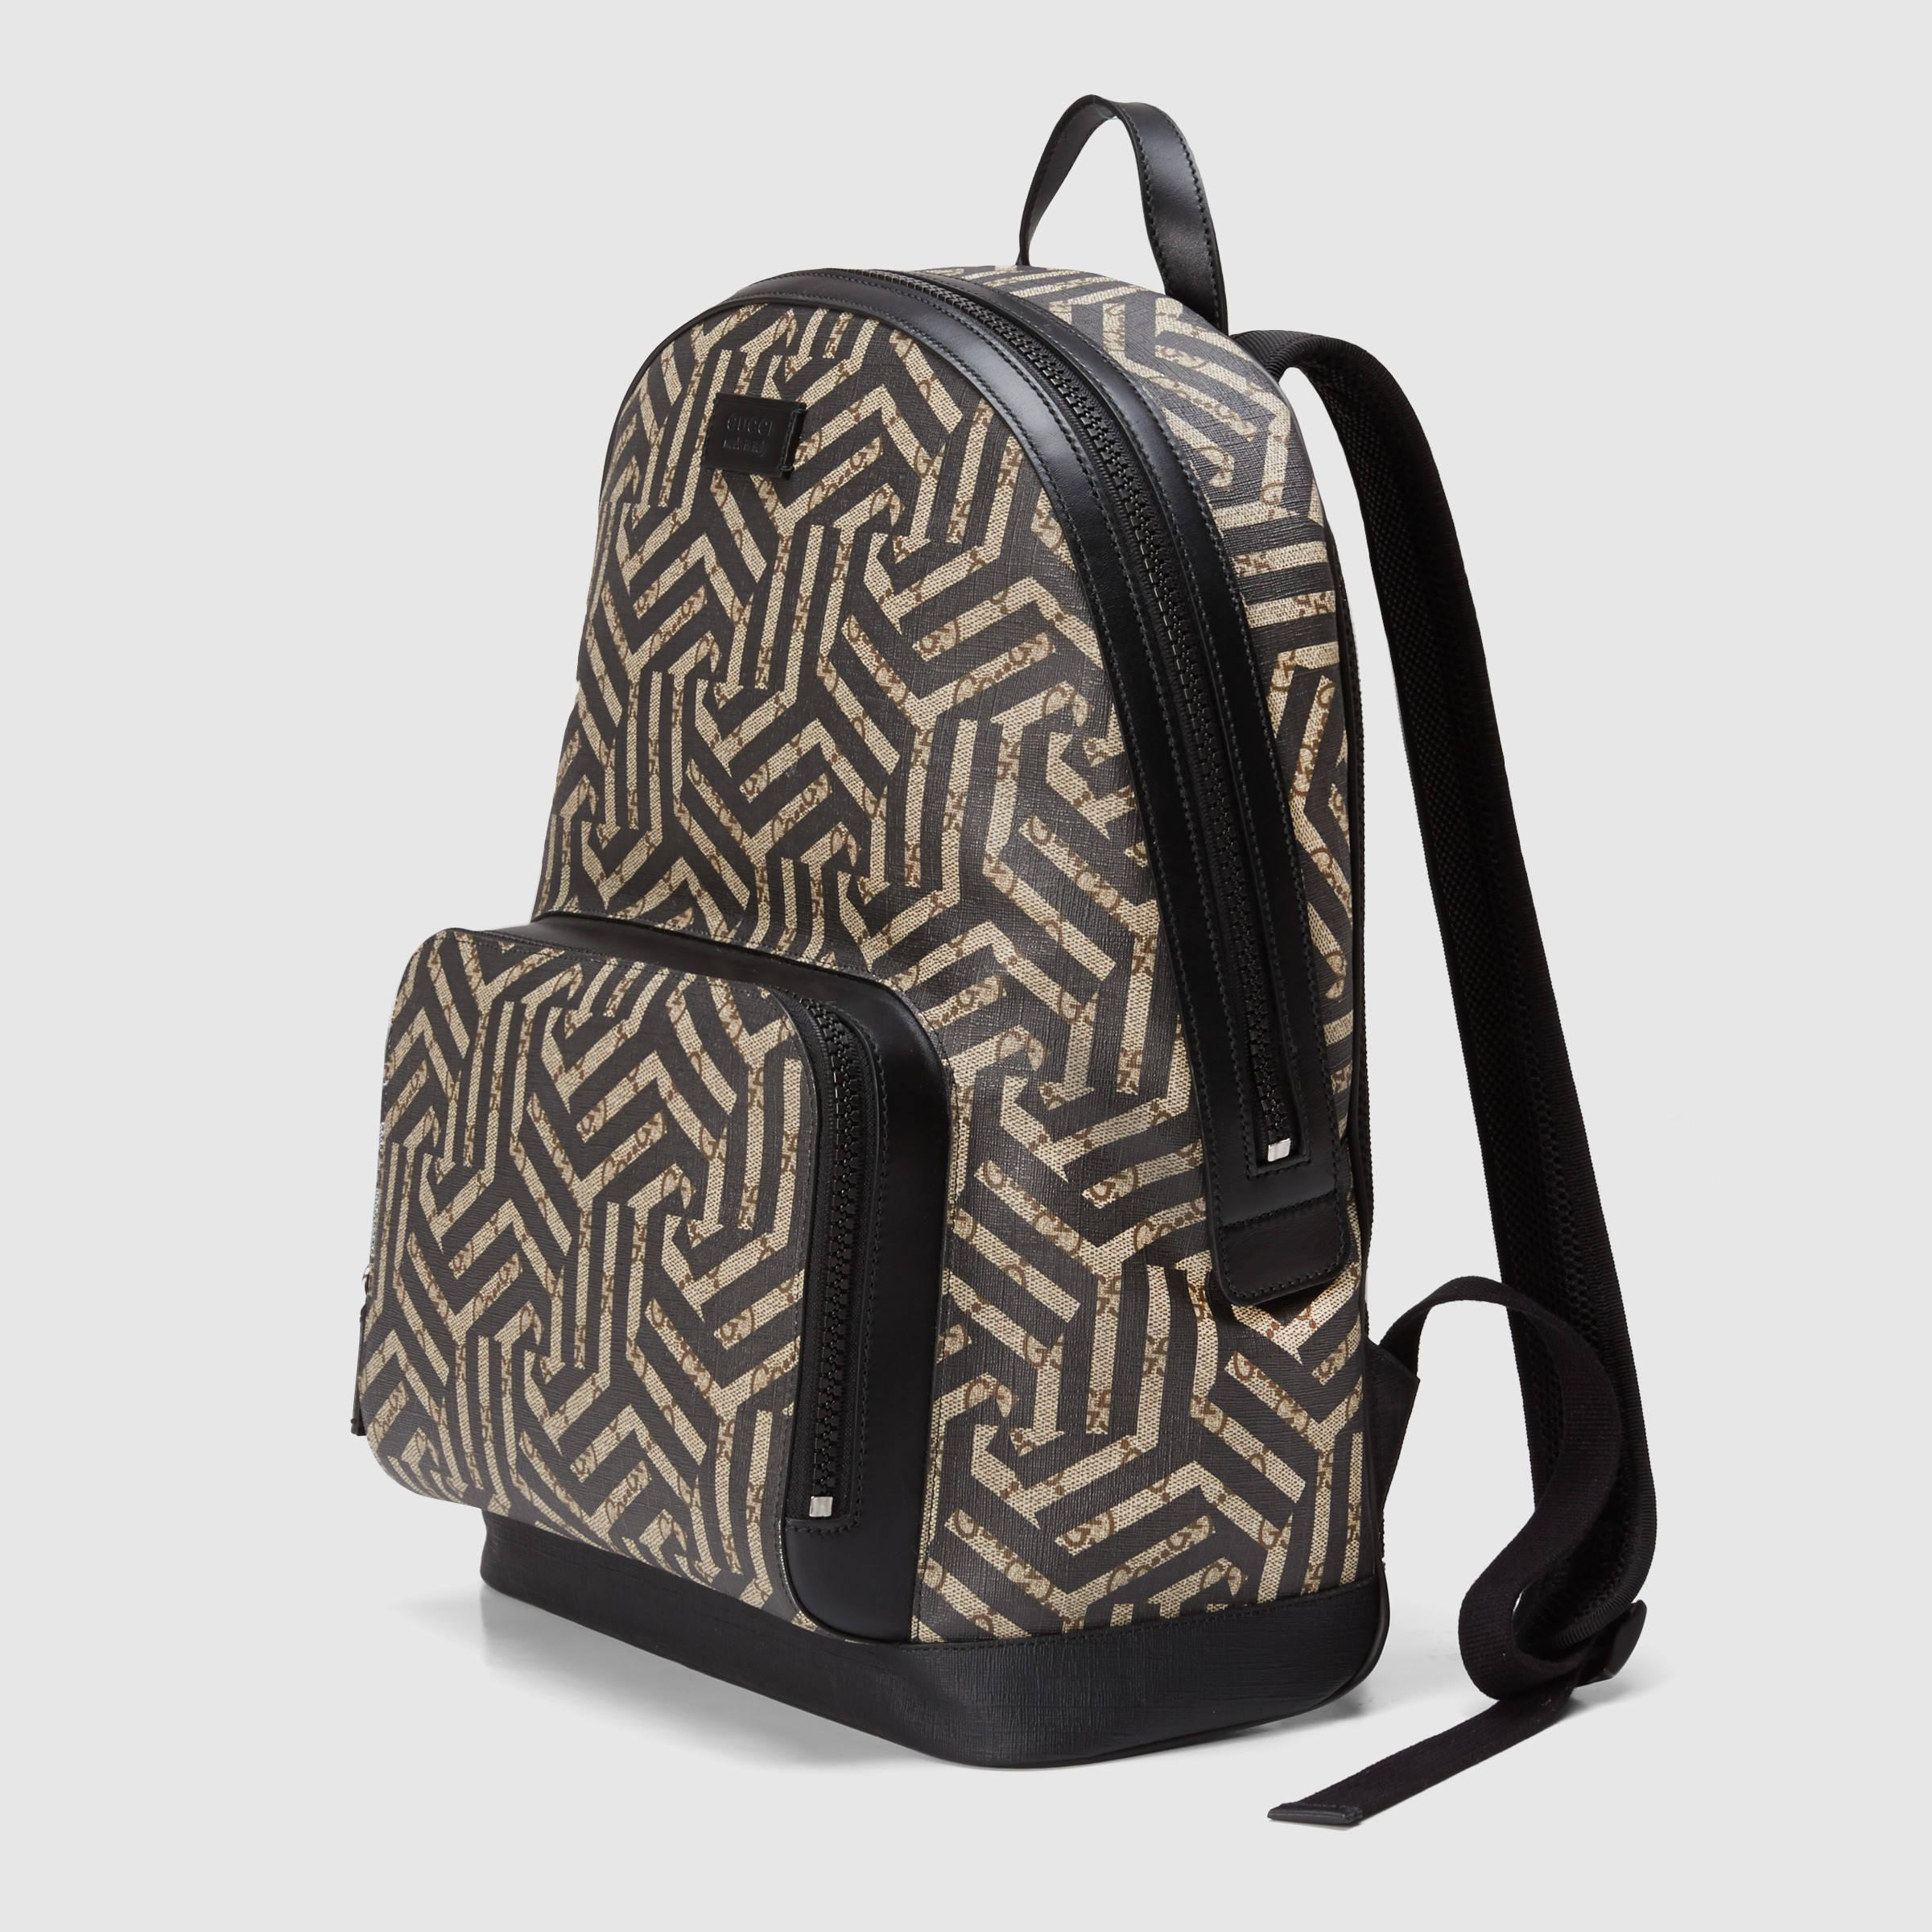 431b38da22b5 Gucci Gg Caleido Backpack in Black for Men - Lyst